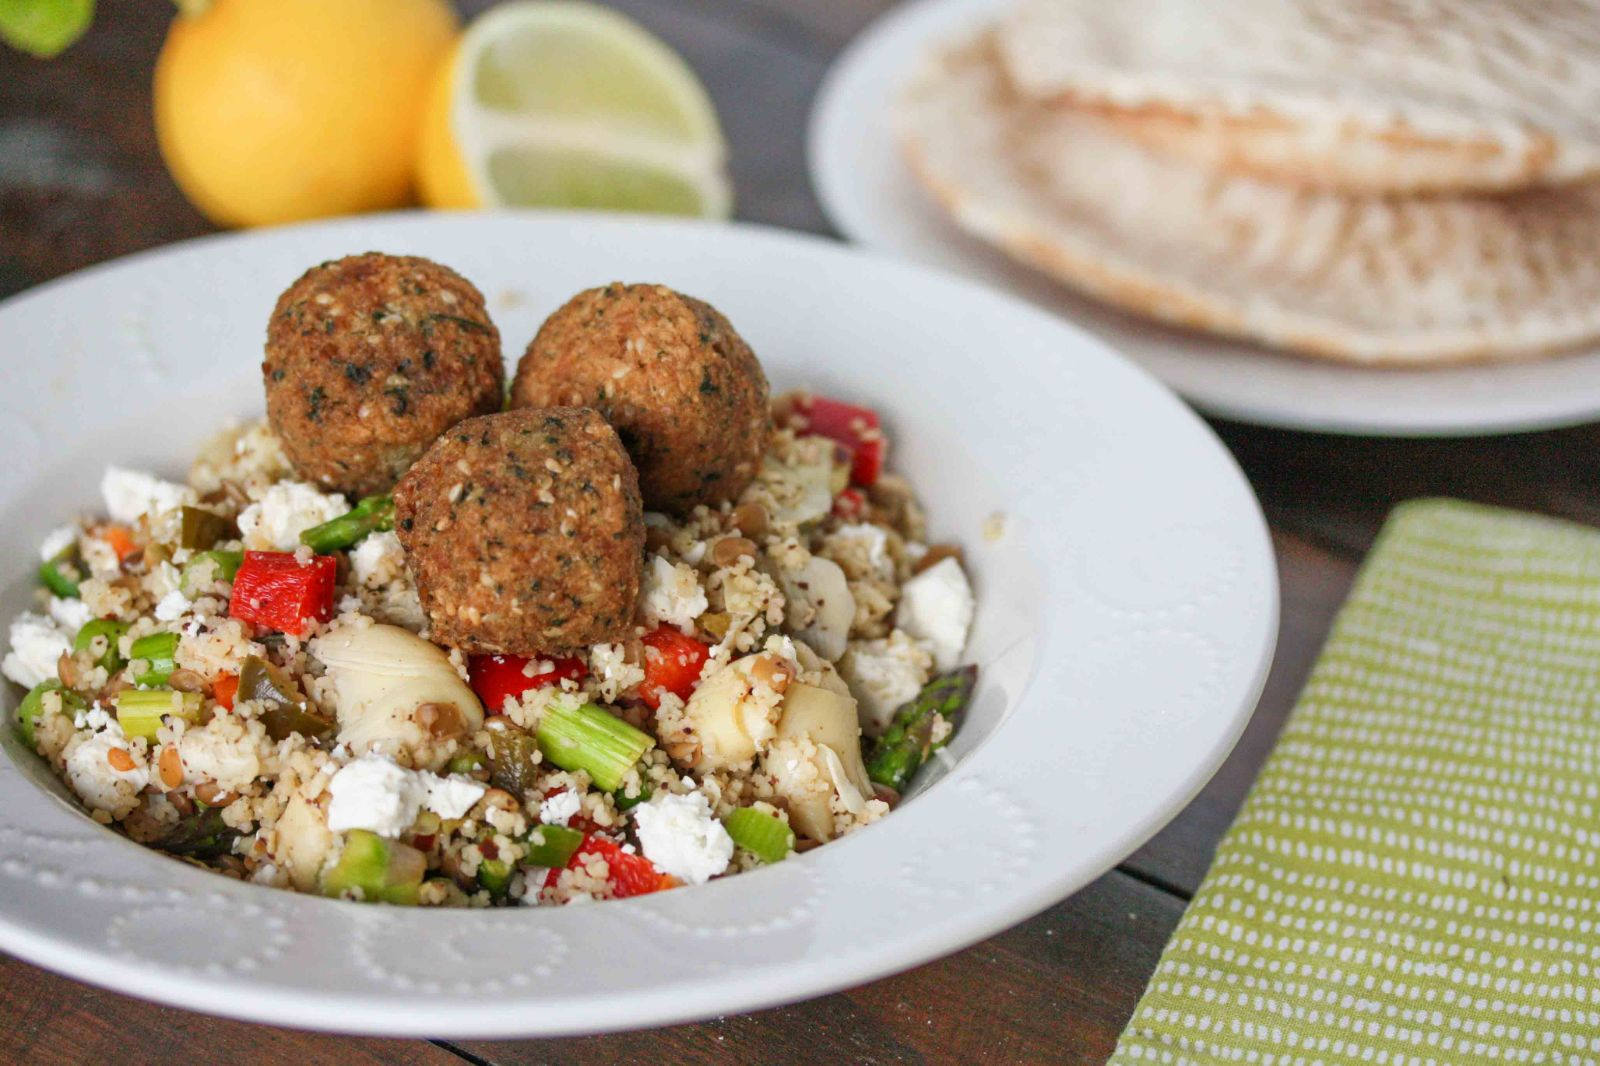 Asparagus and artichoke cous cous salad with falafel